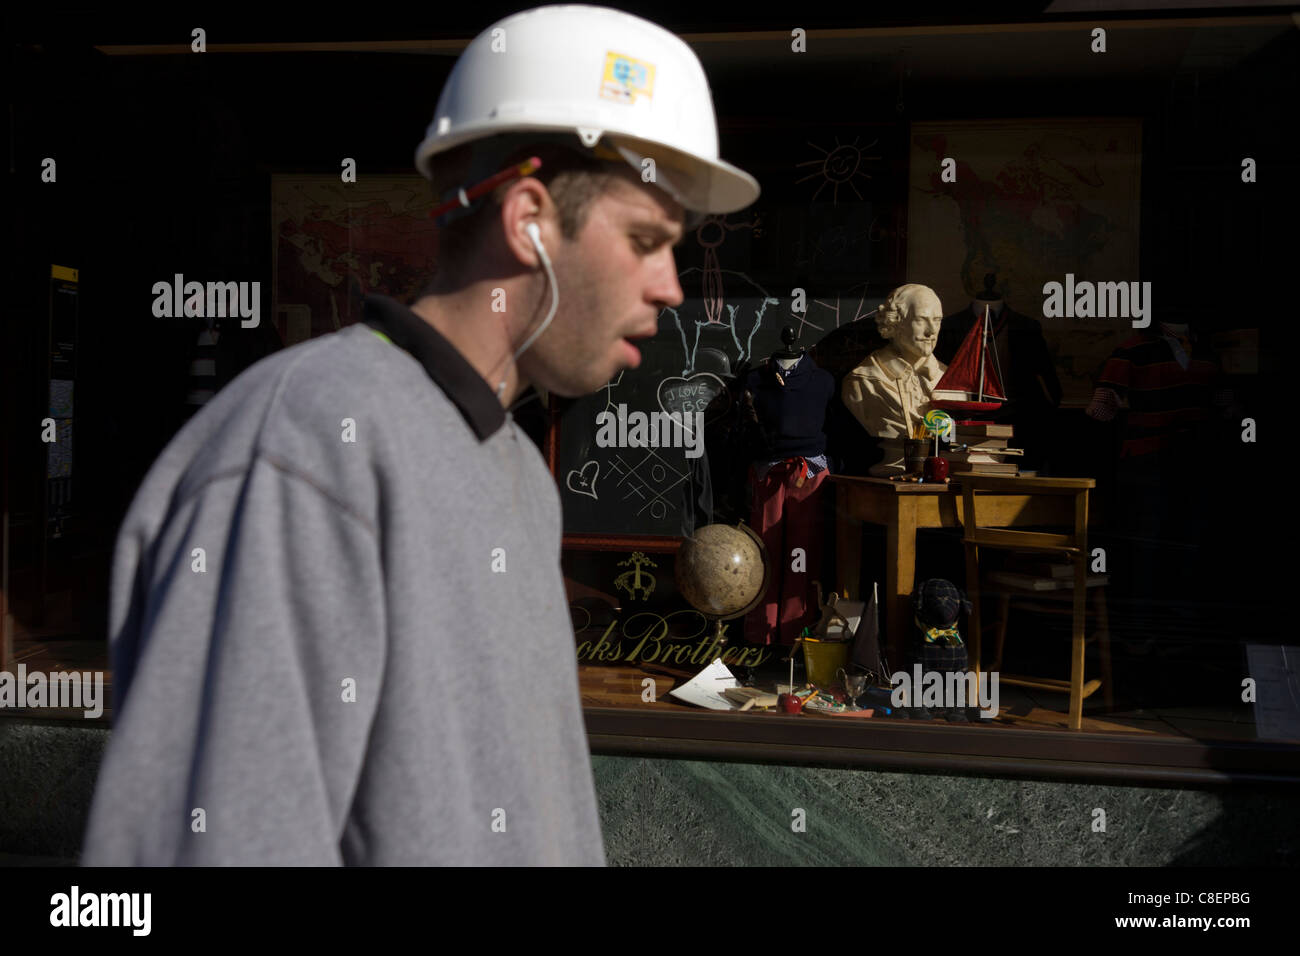 A manual labourer passes-by the a head of English playright William Shakespeare whose bust is sunlit in a London - Stock Image